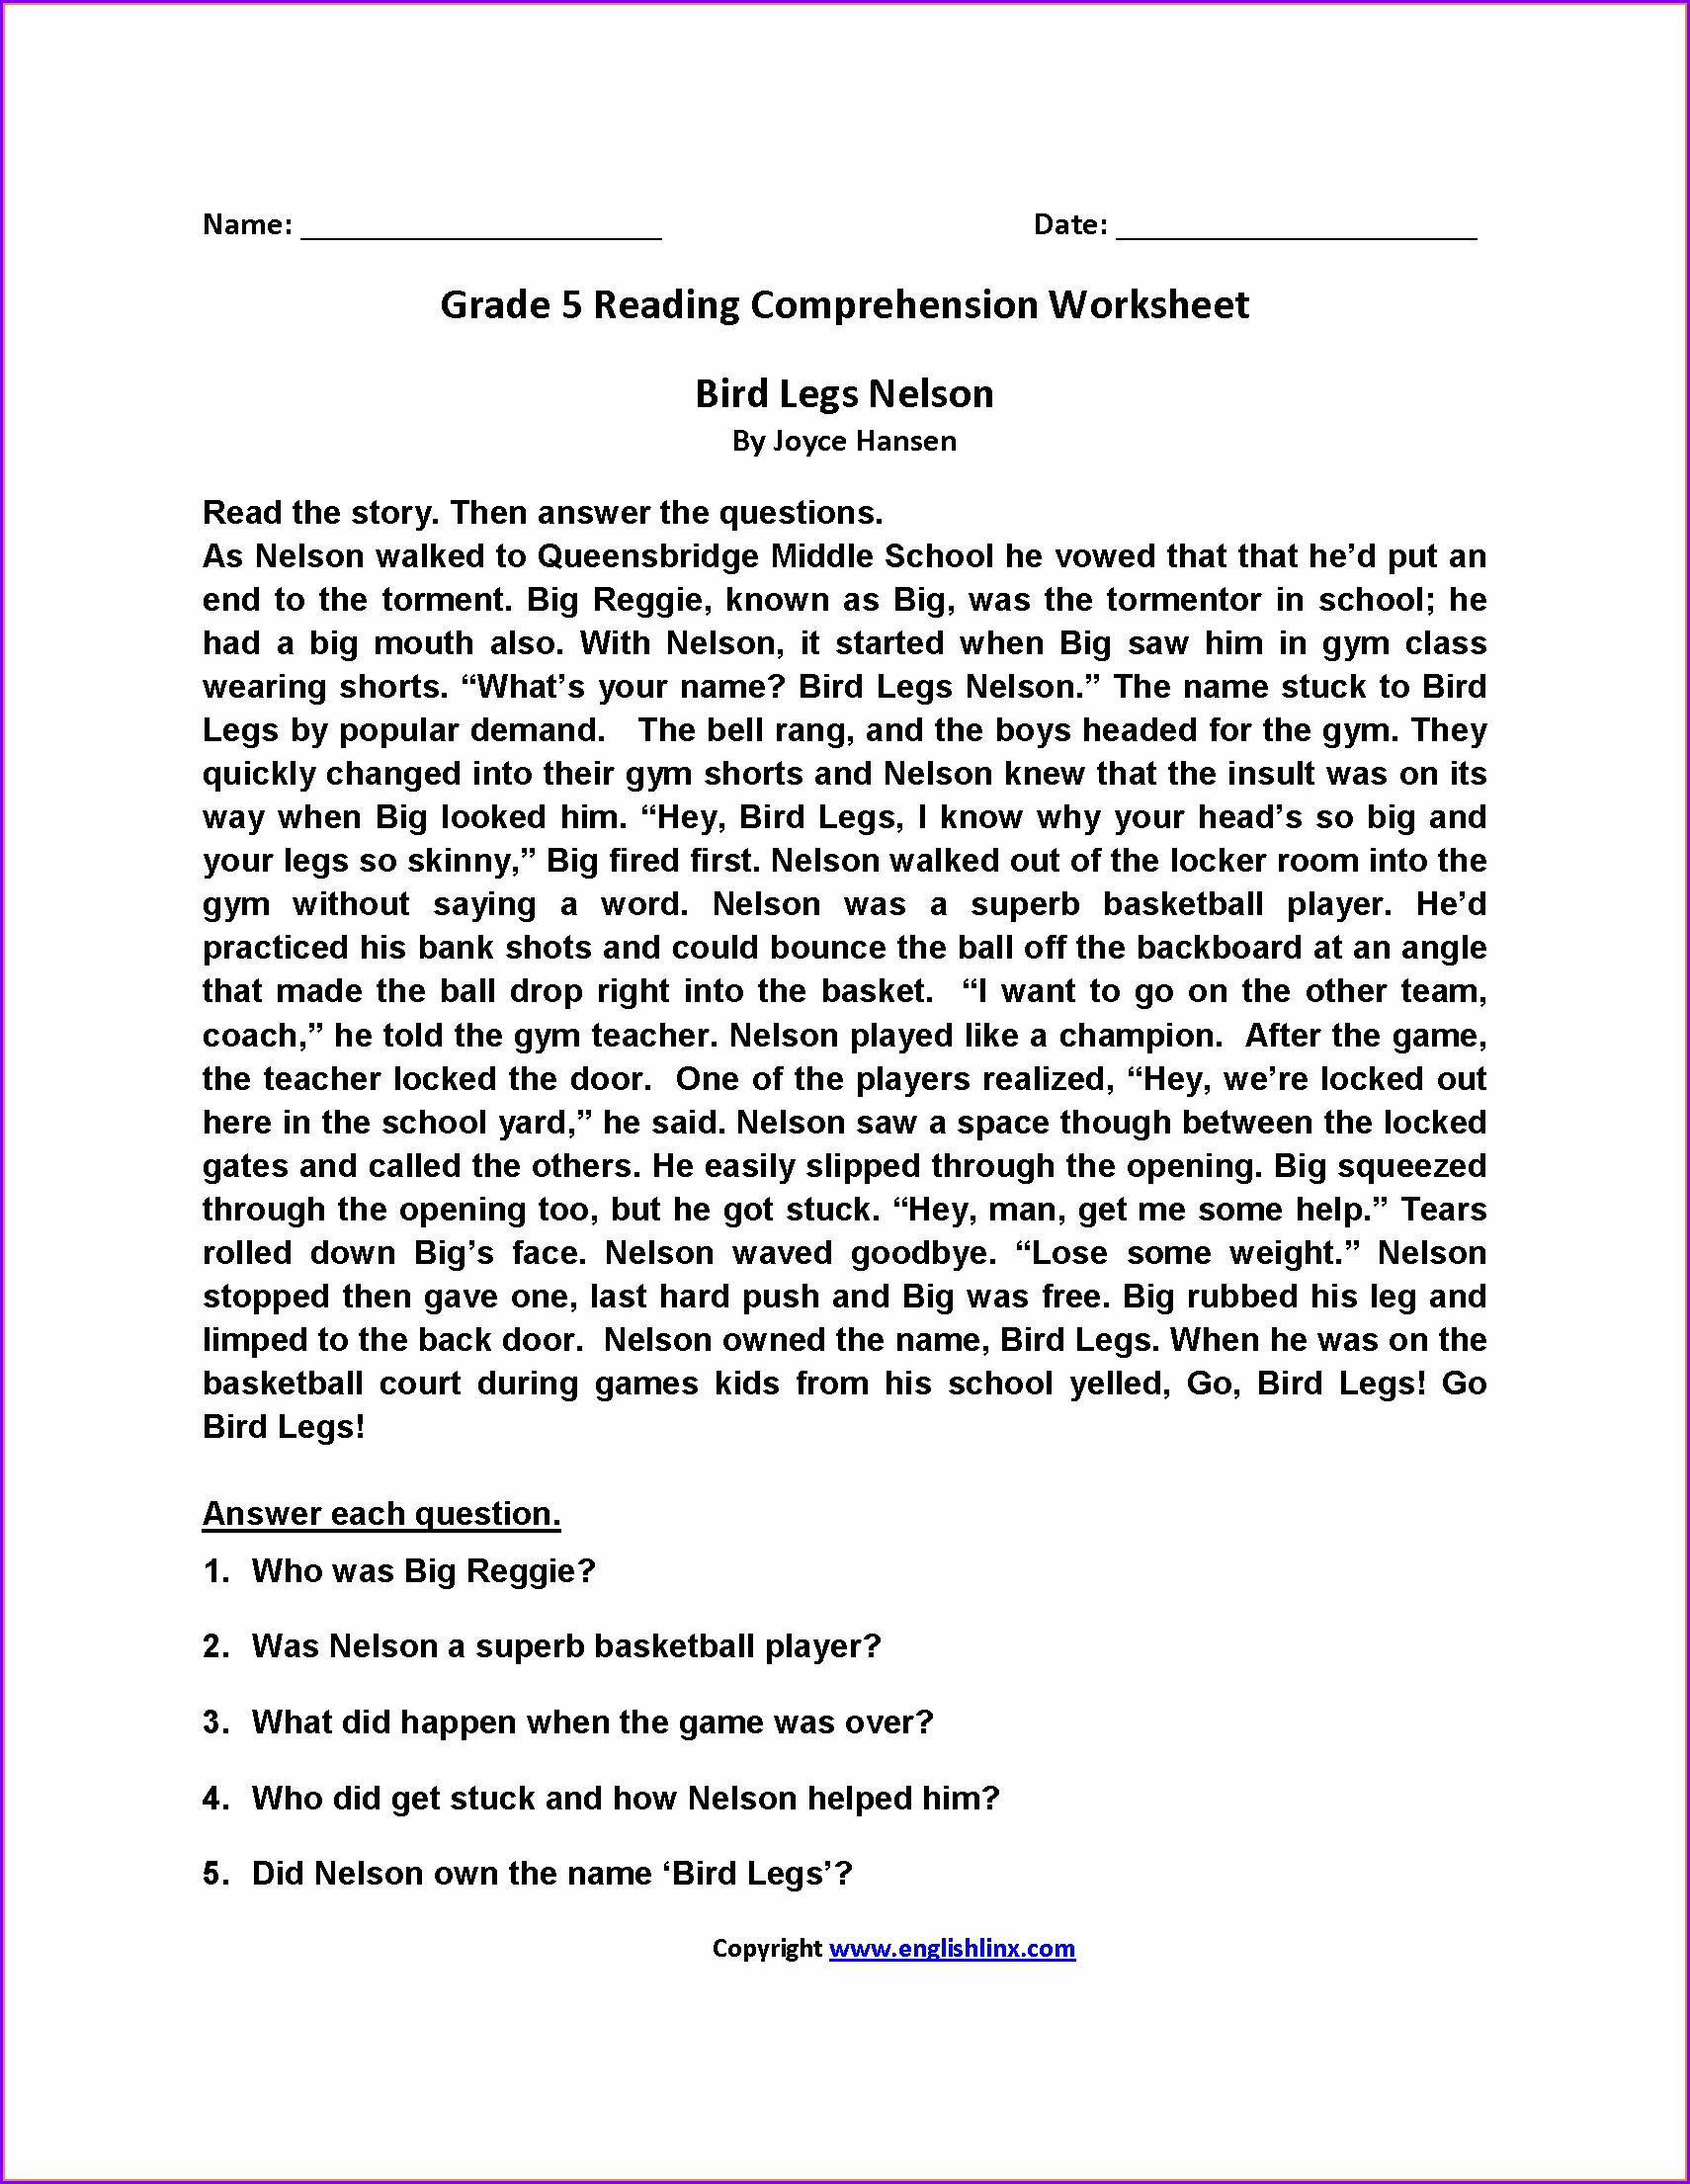 Reading Comprehension Worksheet Grade 5